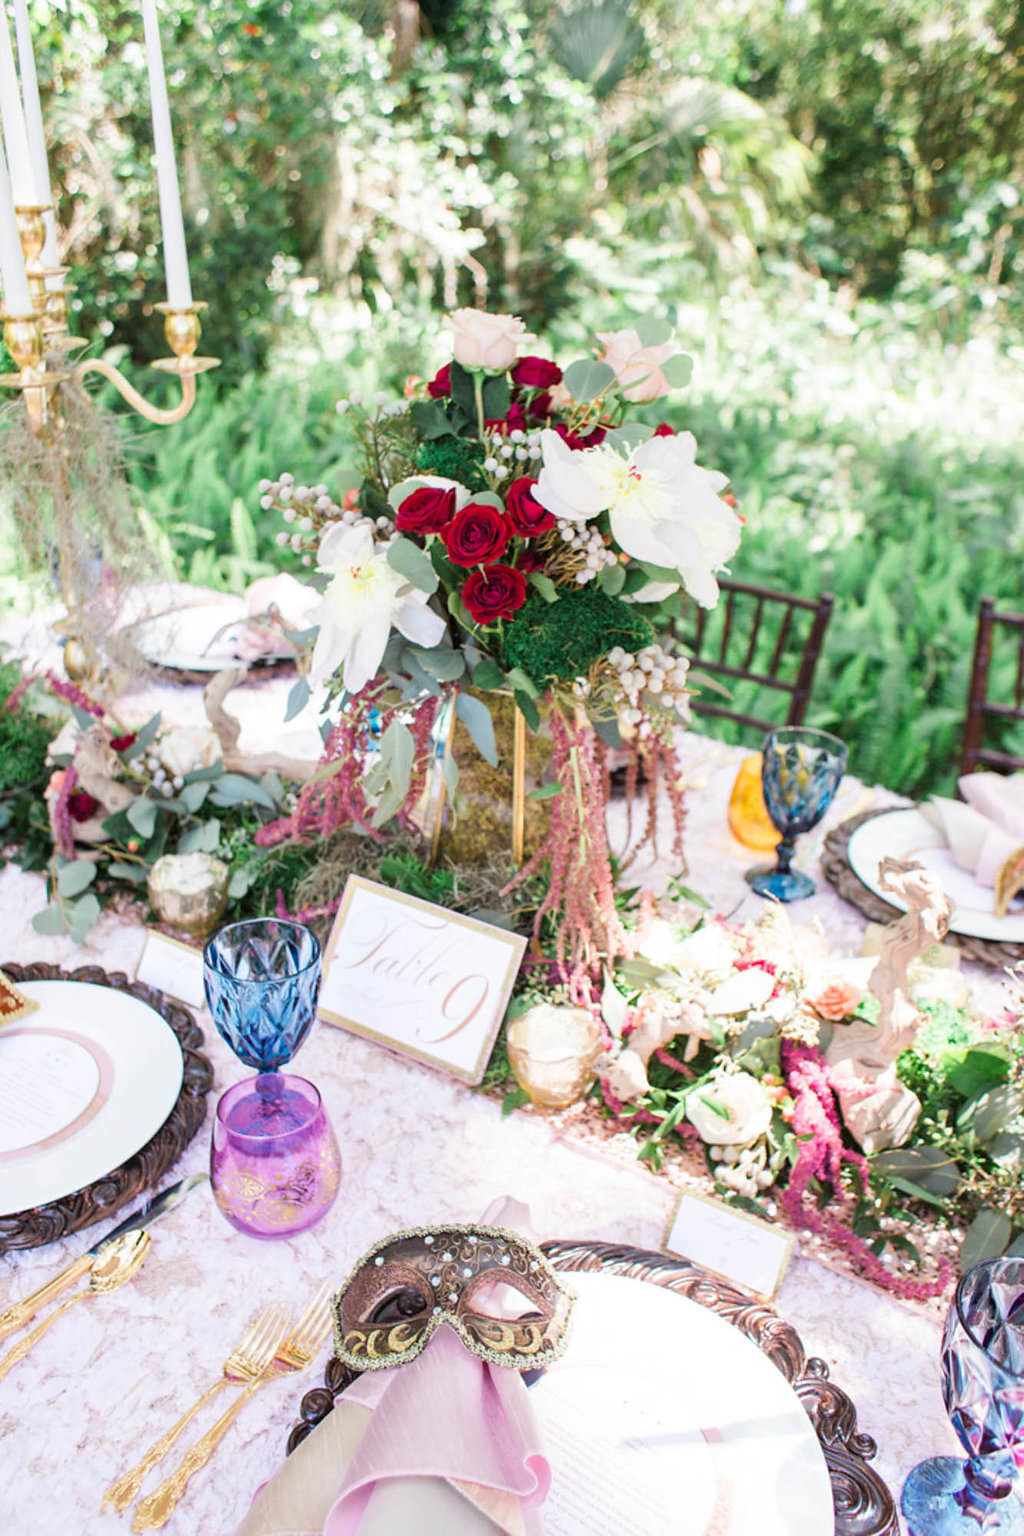 Outdoor Whimsical Boho Garden Wedding Reception Decor with Vintage Mismatched Dishes and Garland Floral Table Runner and Red and White Centerpiece